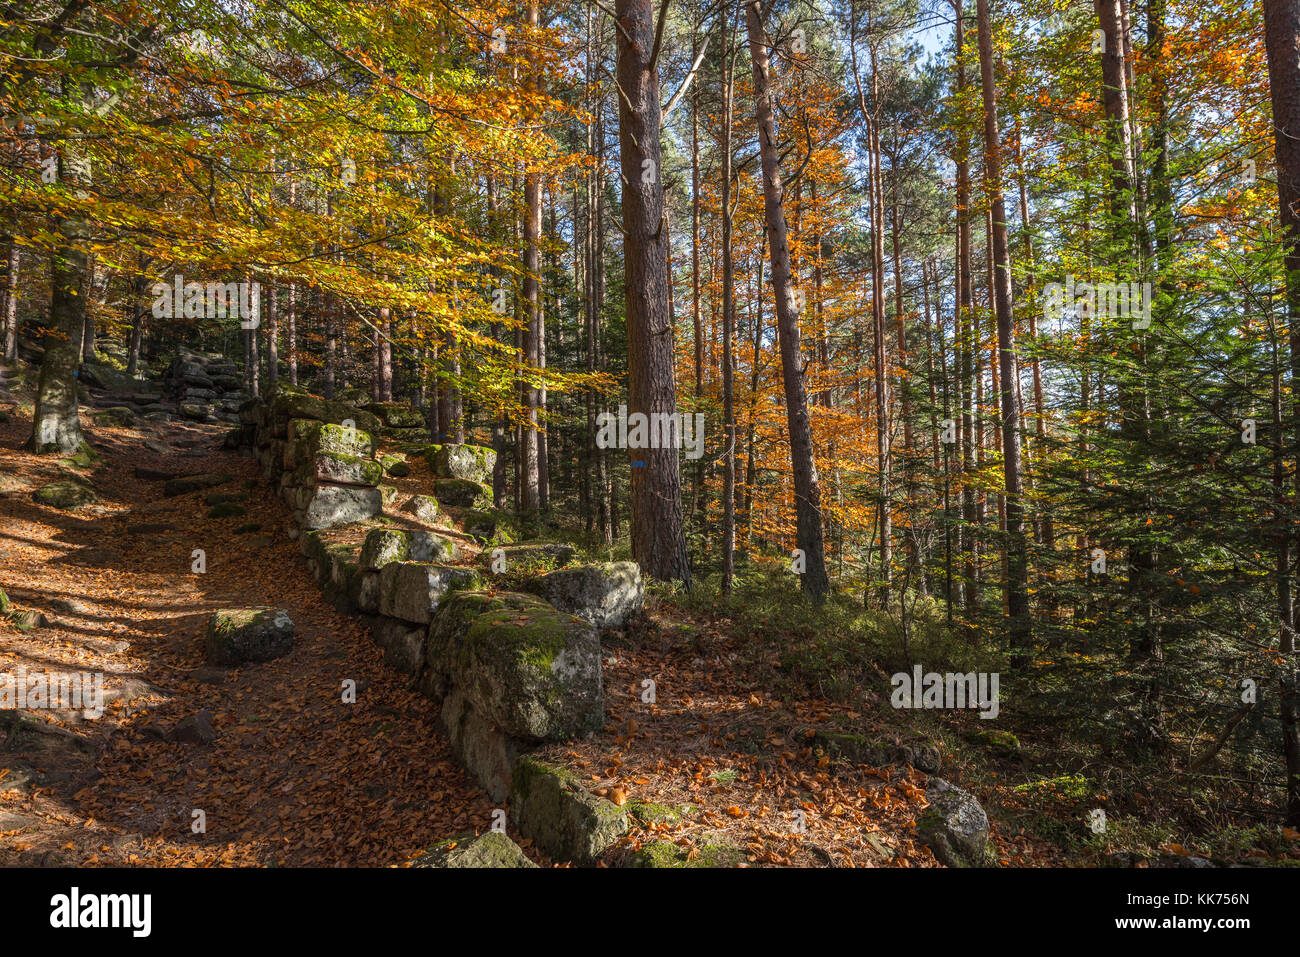 The Pagan Wall, Celtic wall around Mont Sainte-Odile, in German Odilienberg, peak in the Vosges Mountains, Alsace, - Stock Image